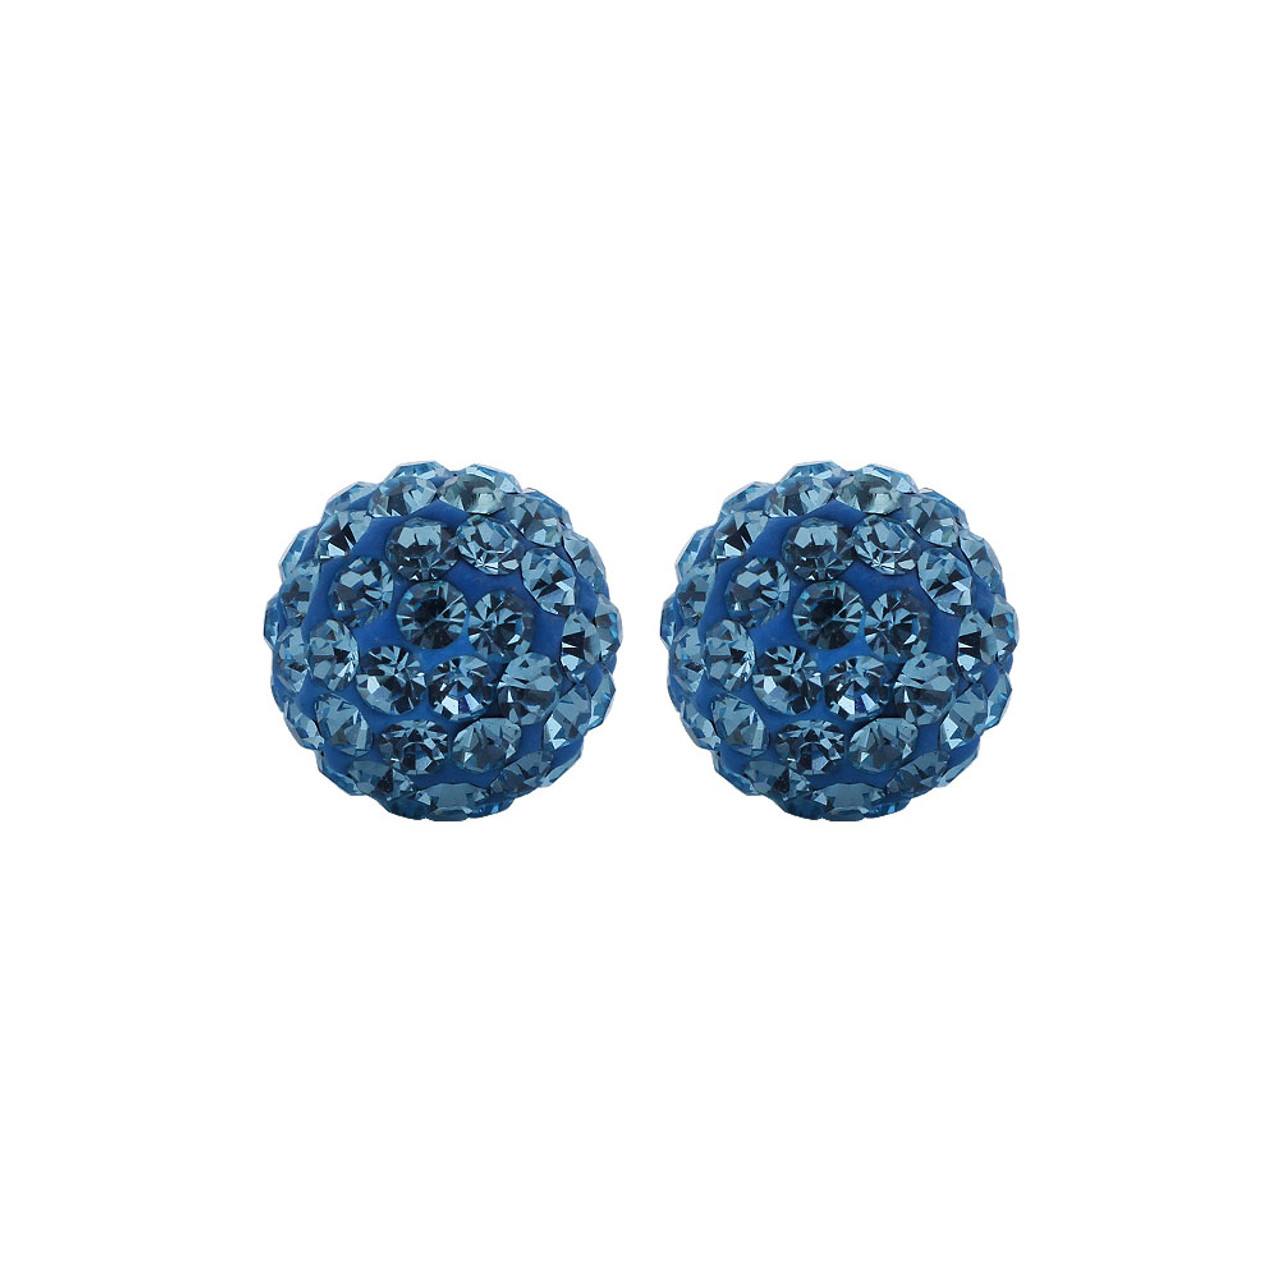 8mm Round Blue Crystal Ball Stud Earrings